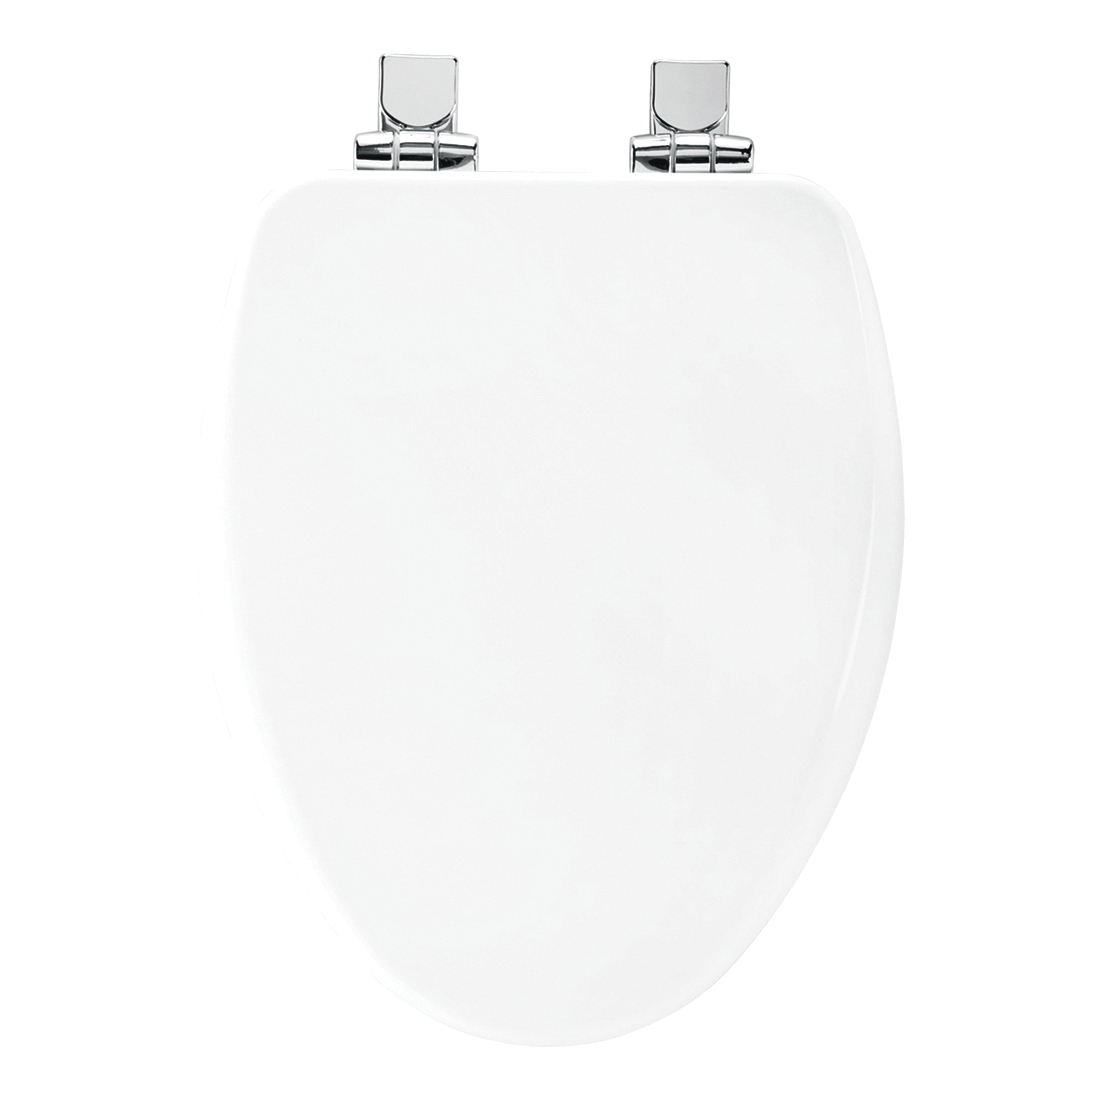 Church® 7F18170CHSL 000 ALESIO II™ Toilet Seat With Cover, Elongated Bowl, Closed Front, Wood, White, Easy Clean/Change® Hinge